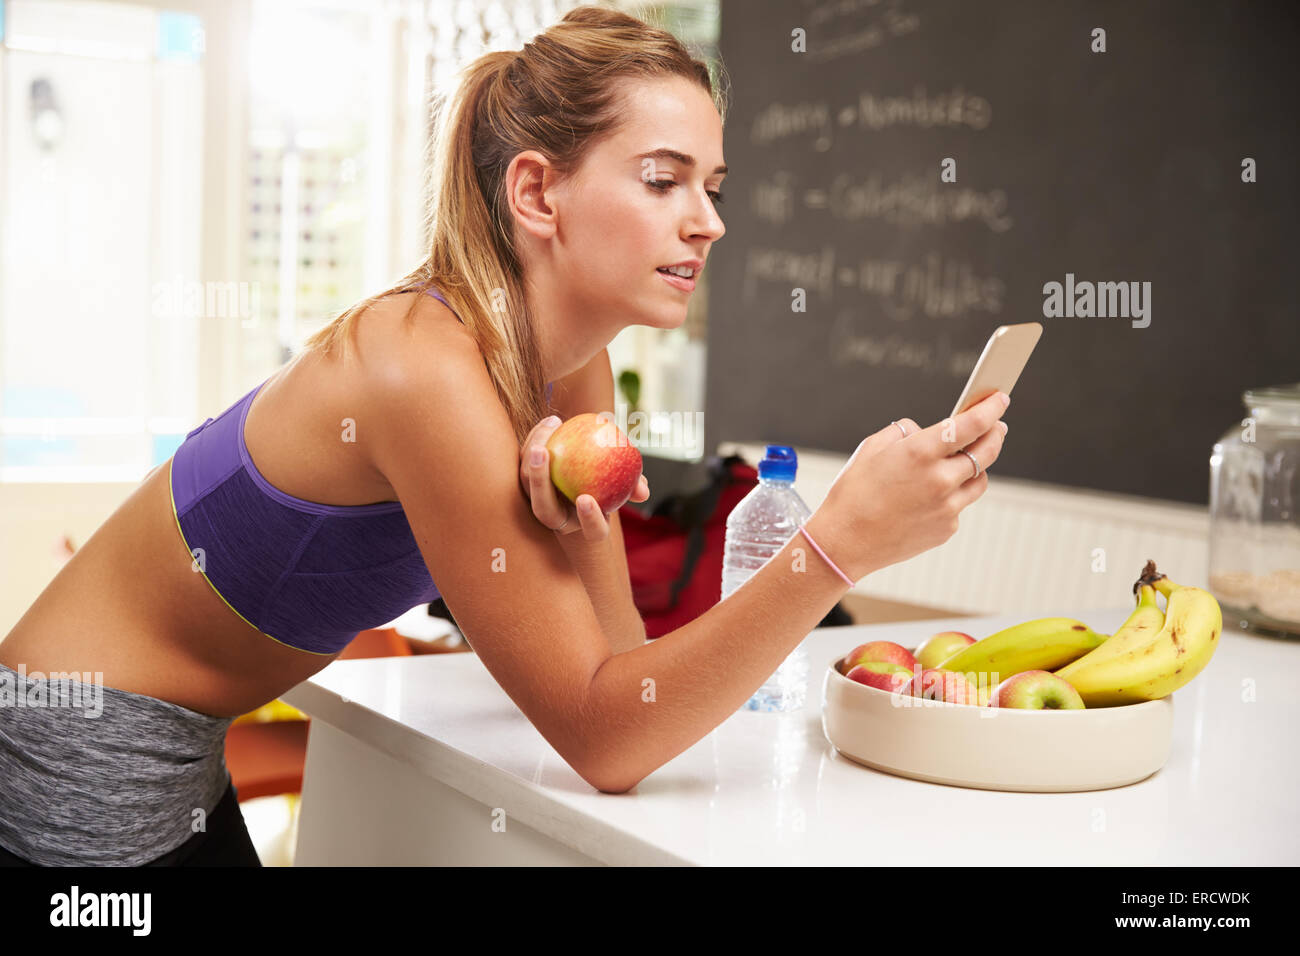 Woman Wearing Gym Clothing Looking At Mobile Phone - Stock Image